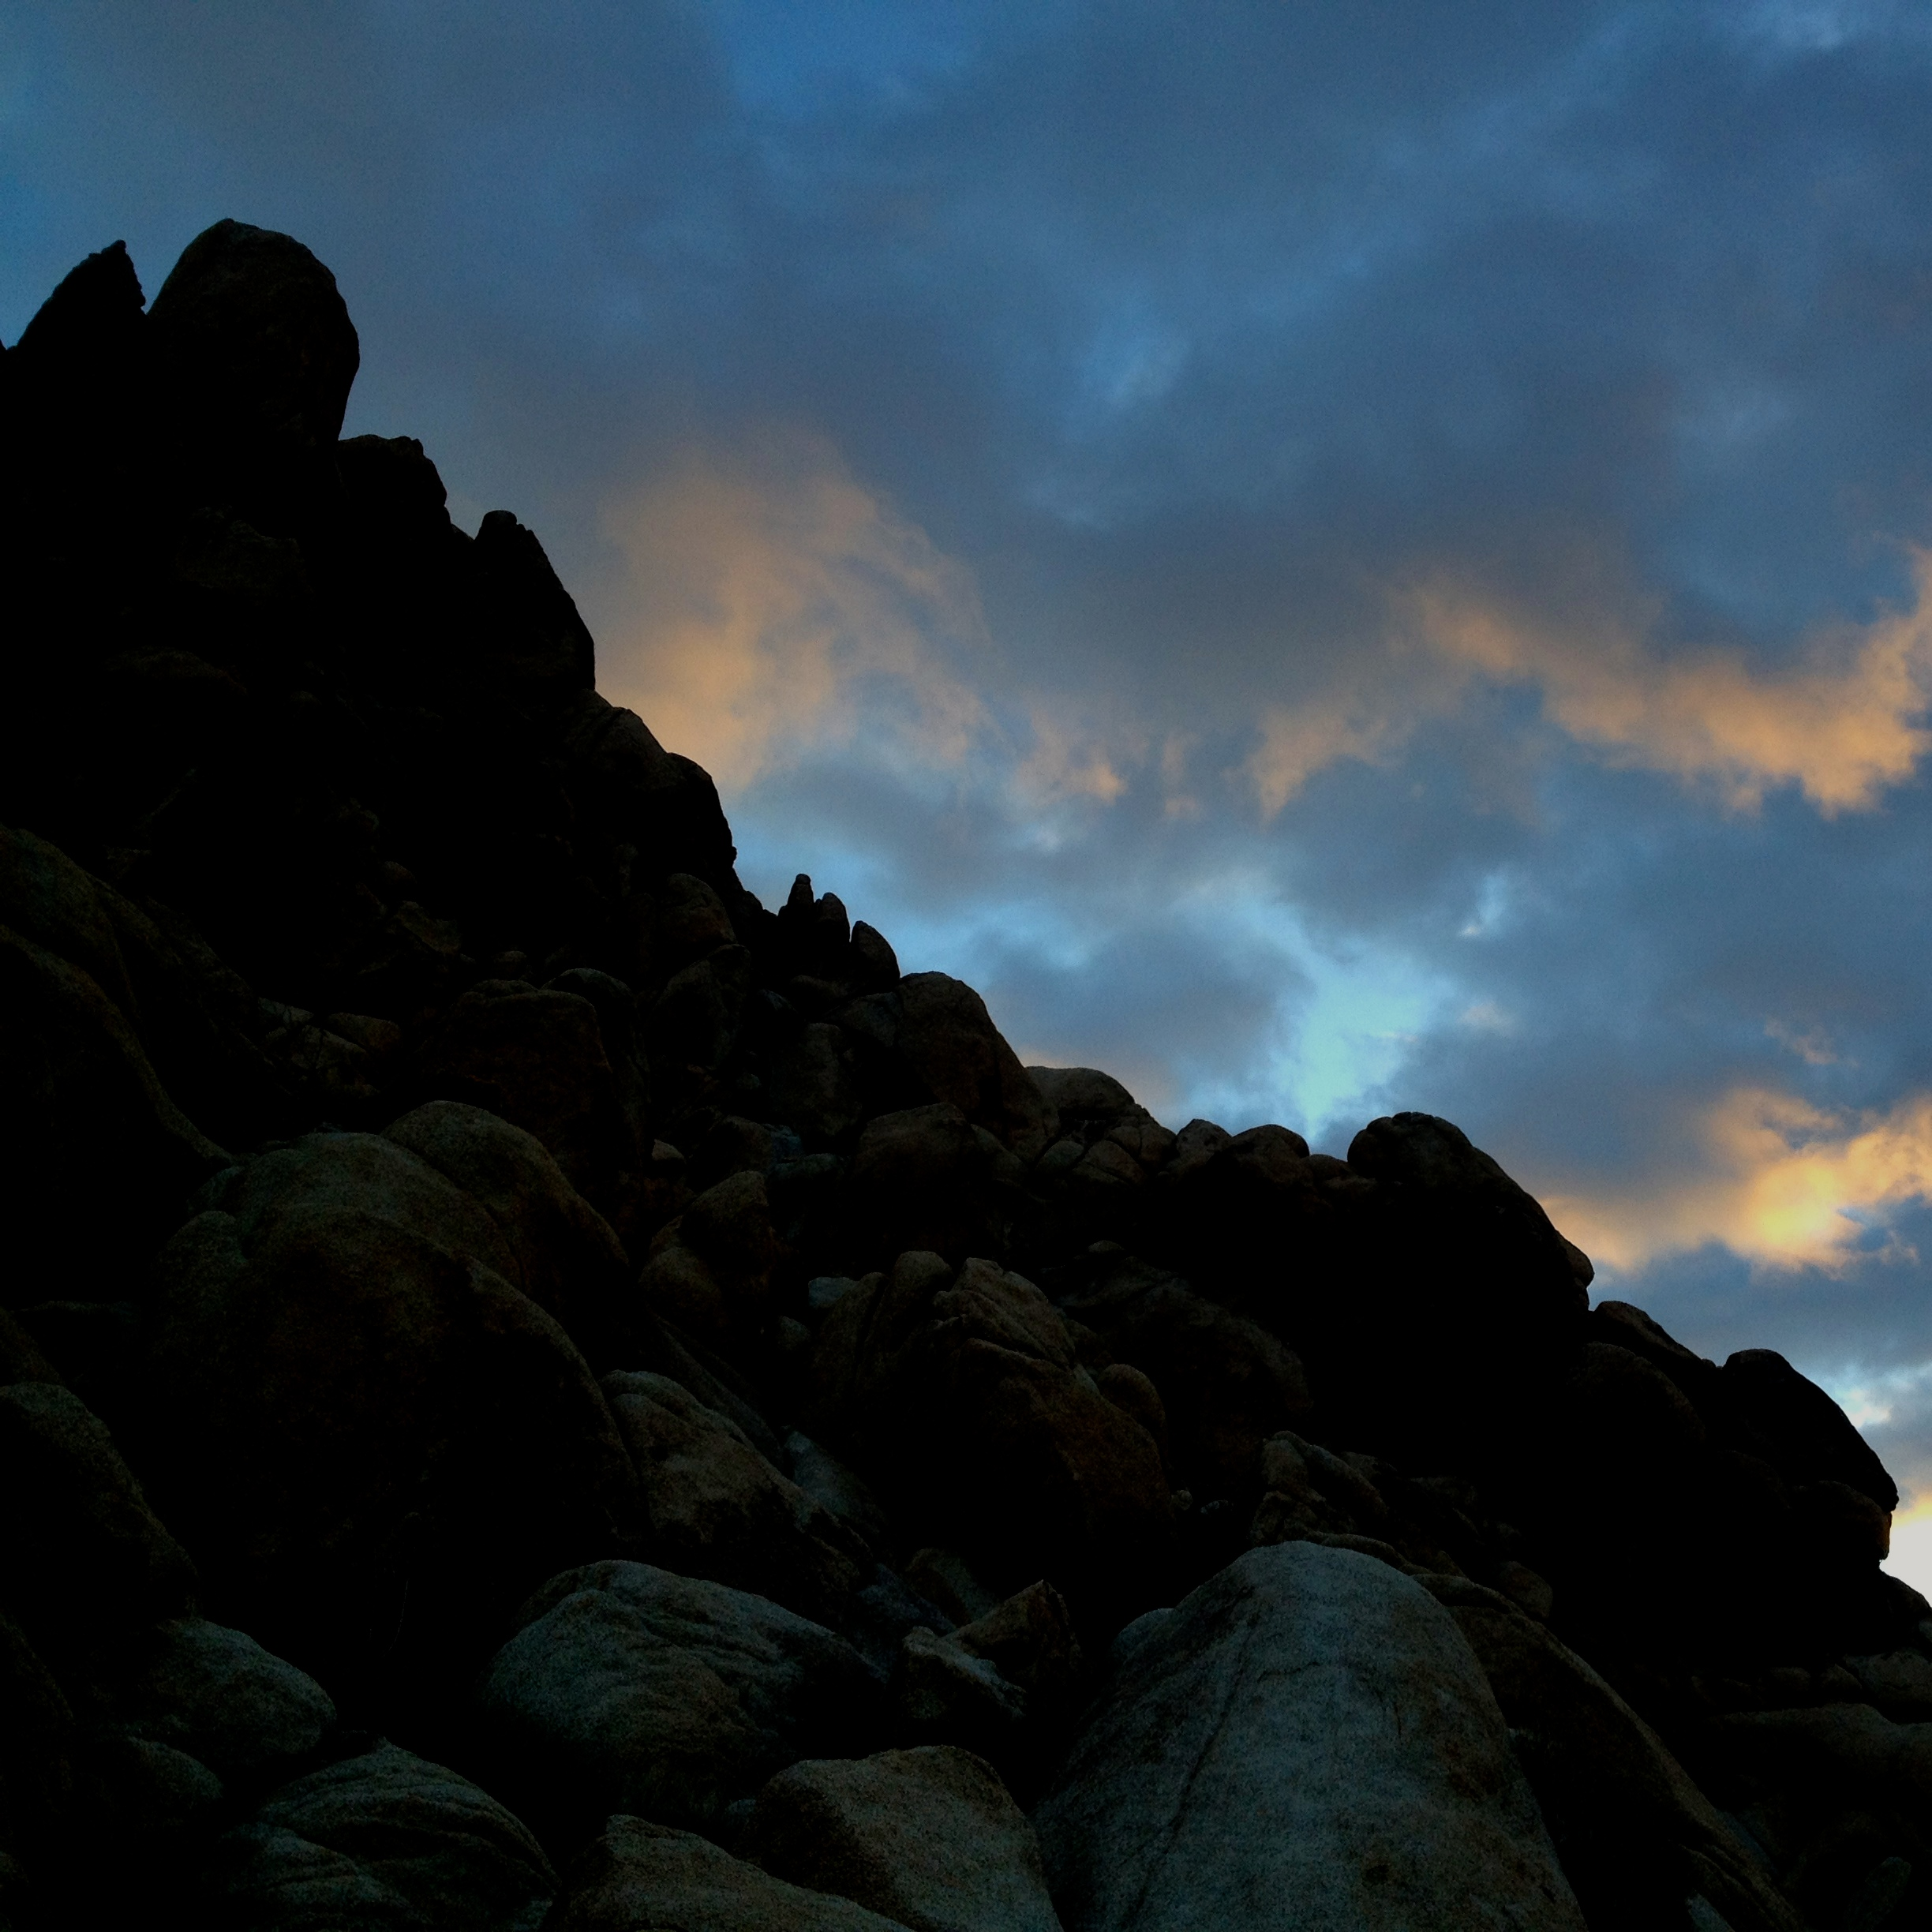 Dawn, Joshua Tree, California